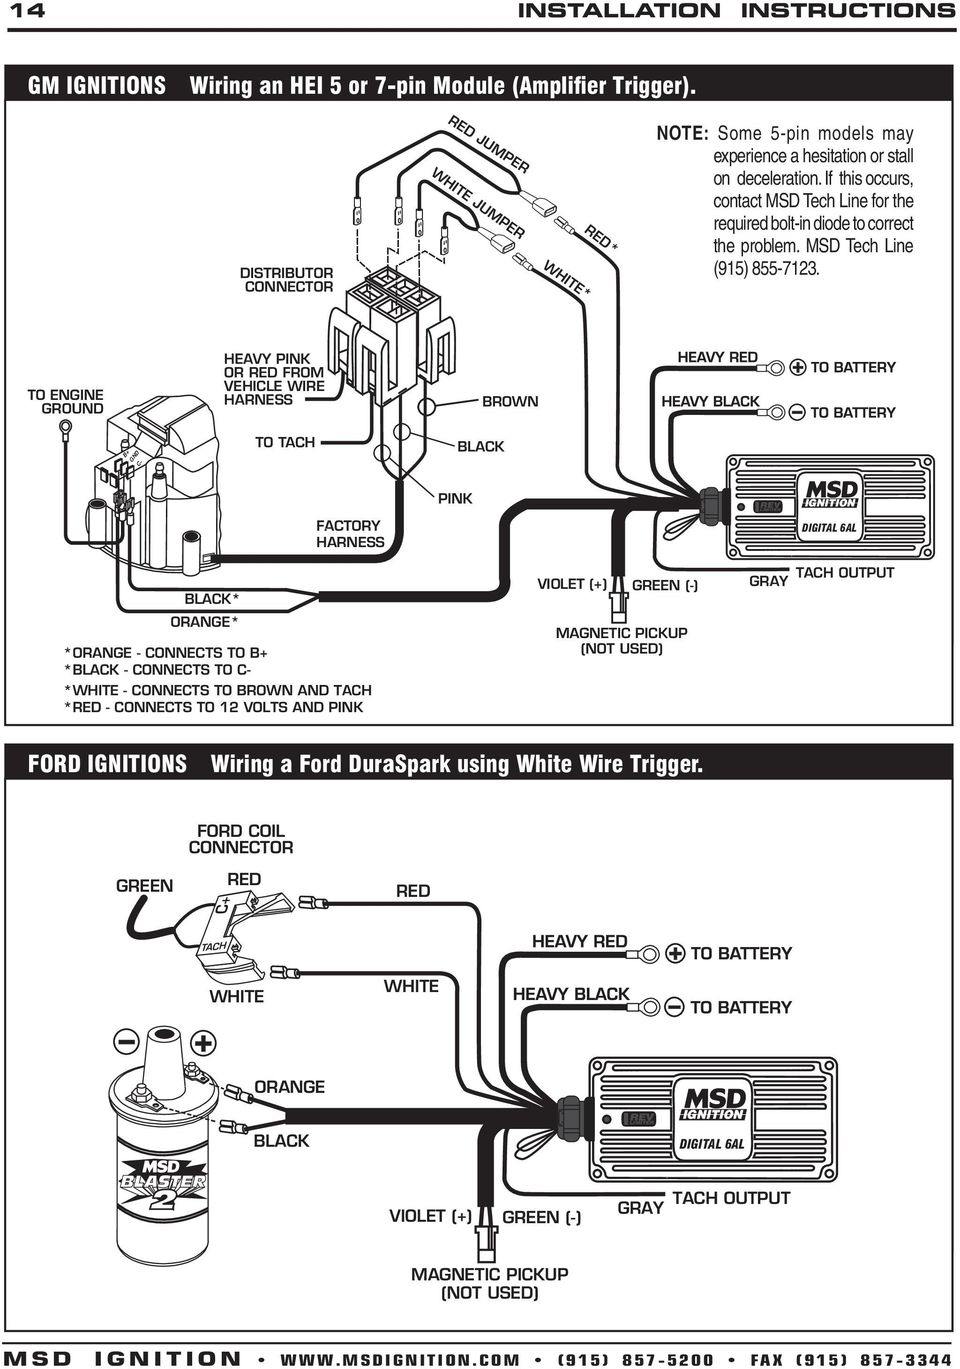 msd 6al part number 6420 wiring diagram msd image 6al msd ignition wiring diagram wiring diagram and hernes on msd 6al part number 6420 wiring